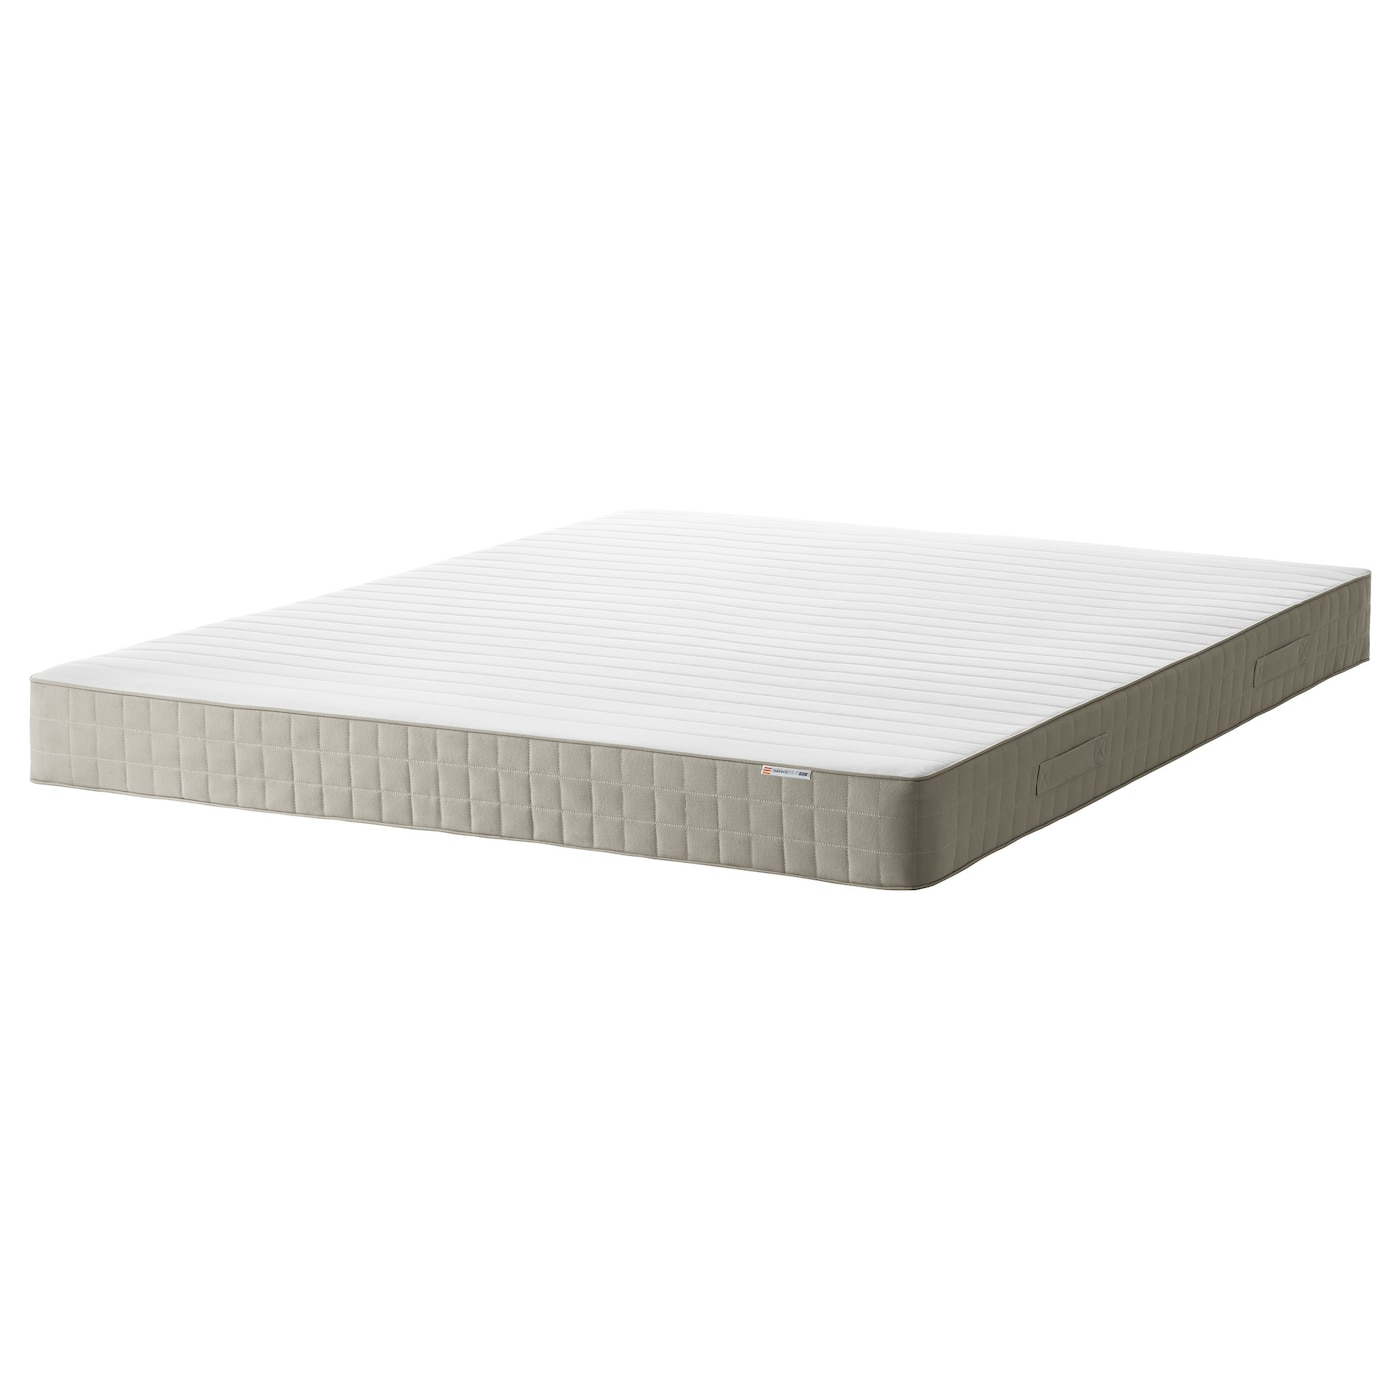 ikea hafslo sprung mattress designed to be used on one side only u2013 no need to